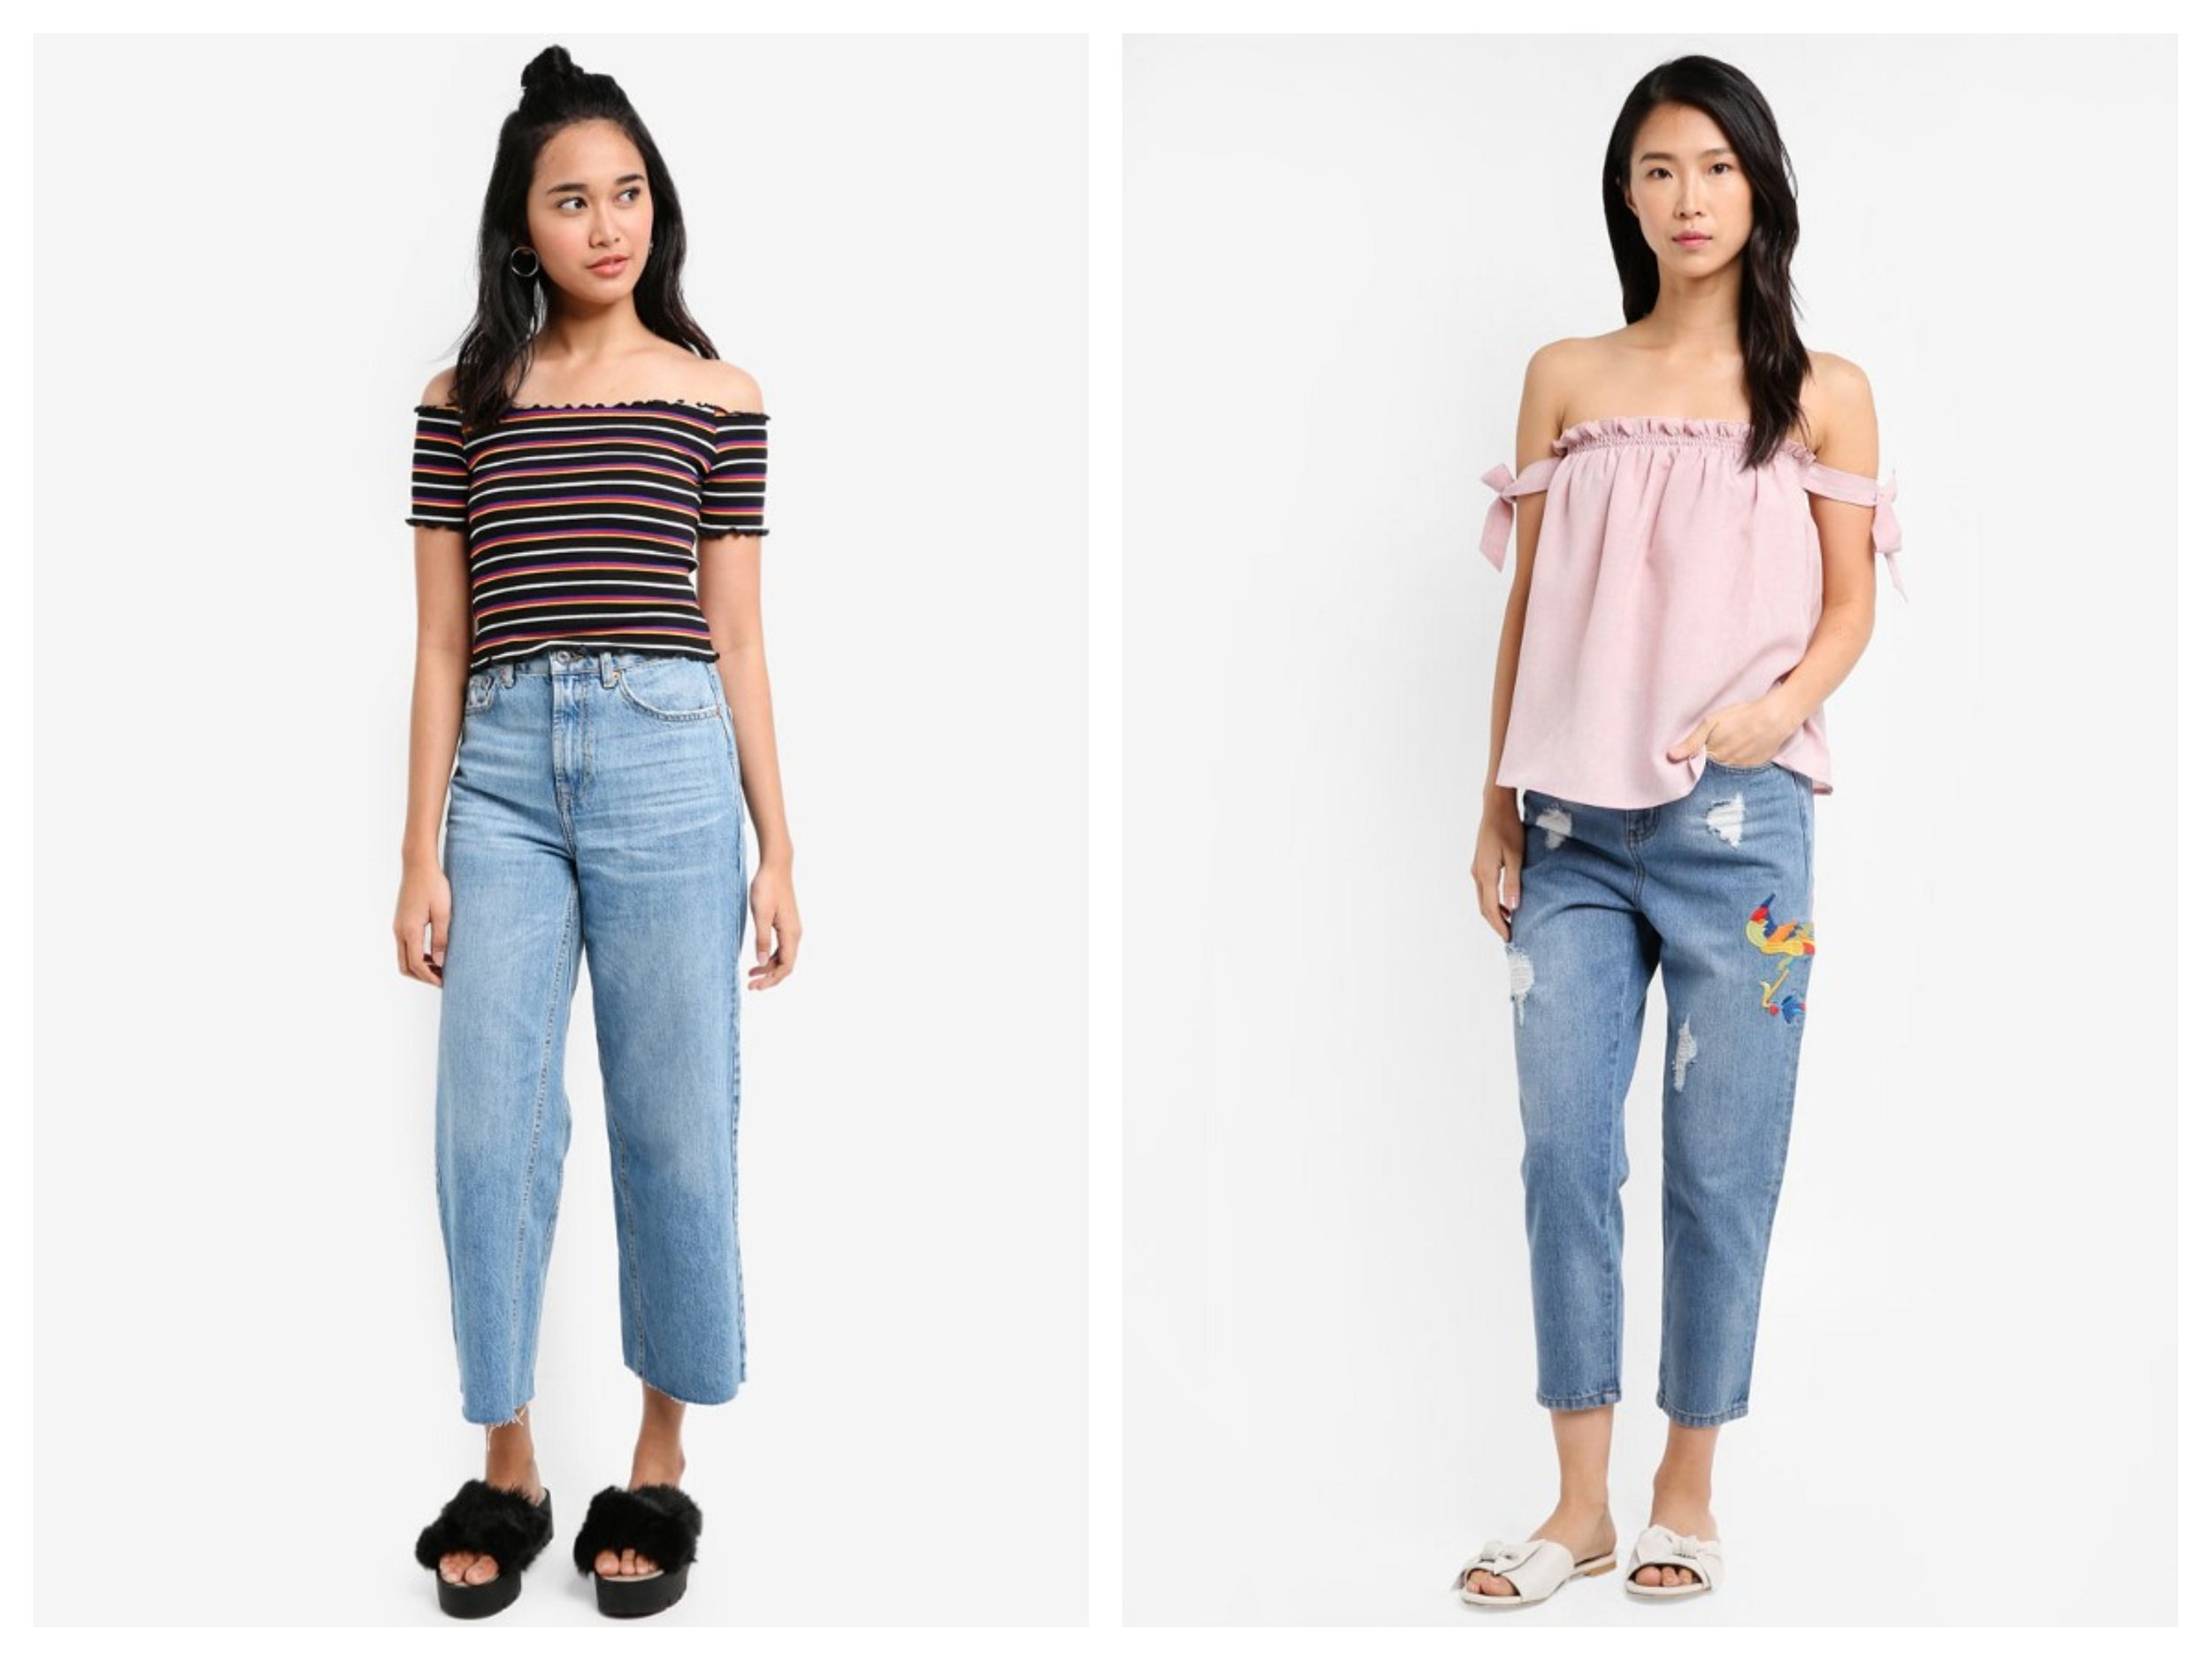 Something Borrowed Rib Knit Off Shoulder Bodycon Top | ZALORA Off Shoulder Top With Straps & Embroidered Boyfriend Jeans